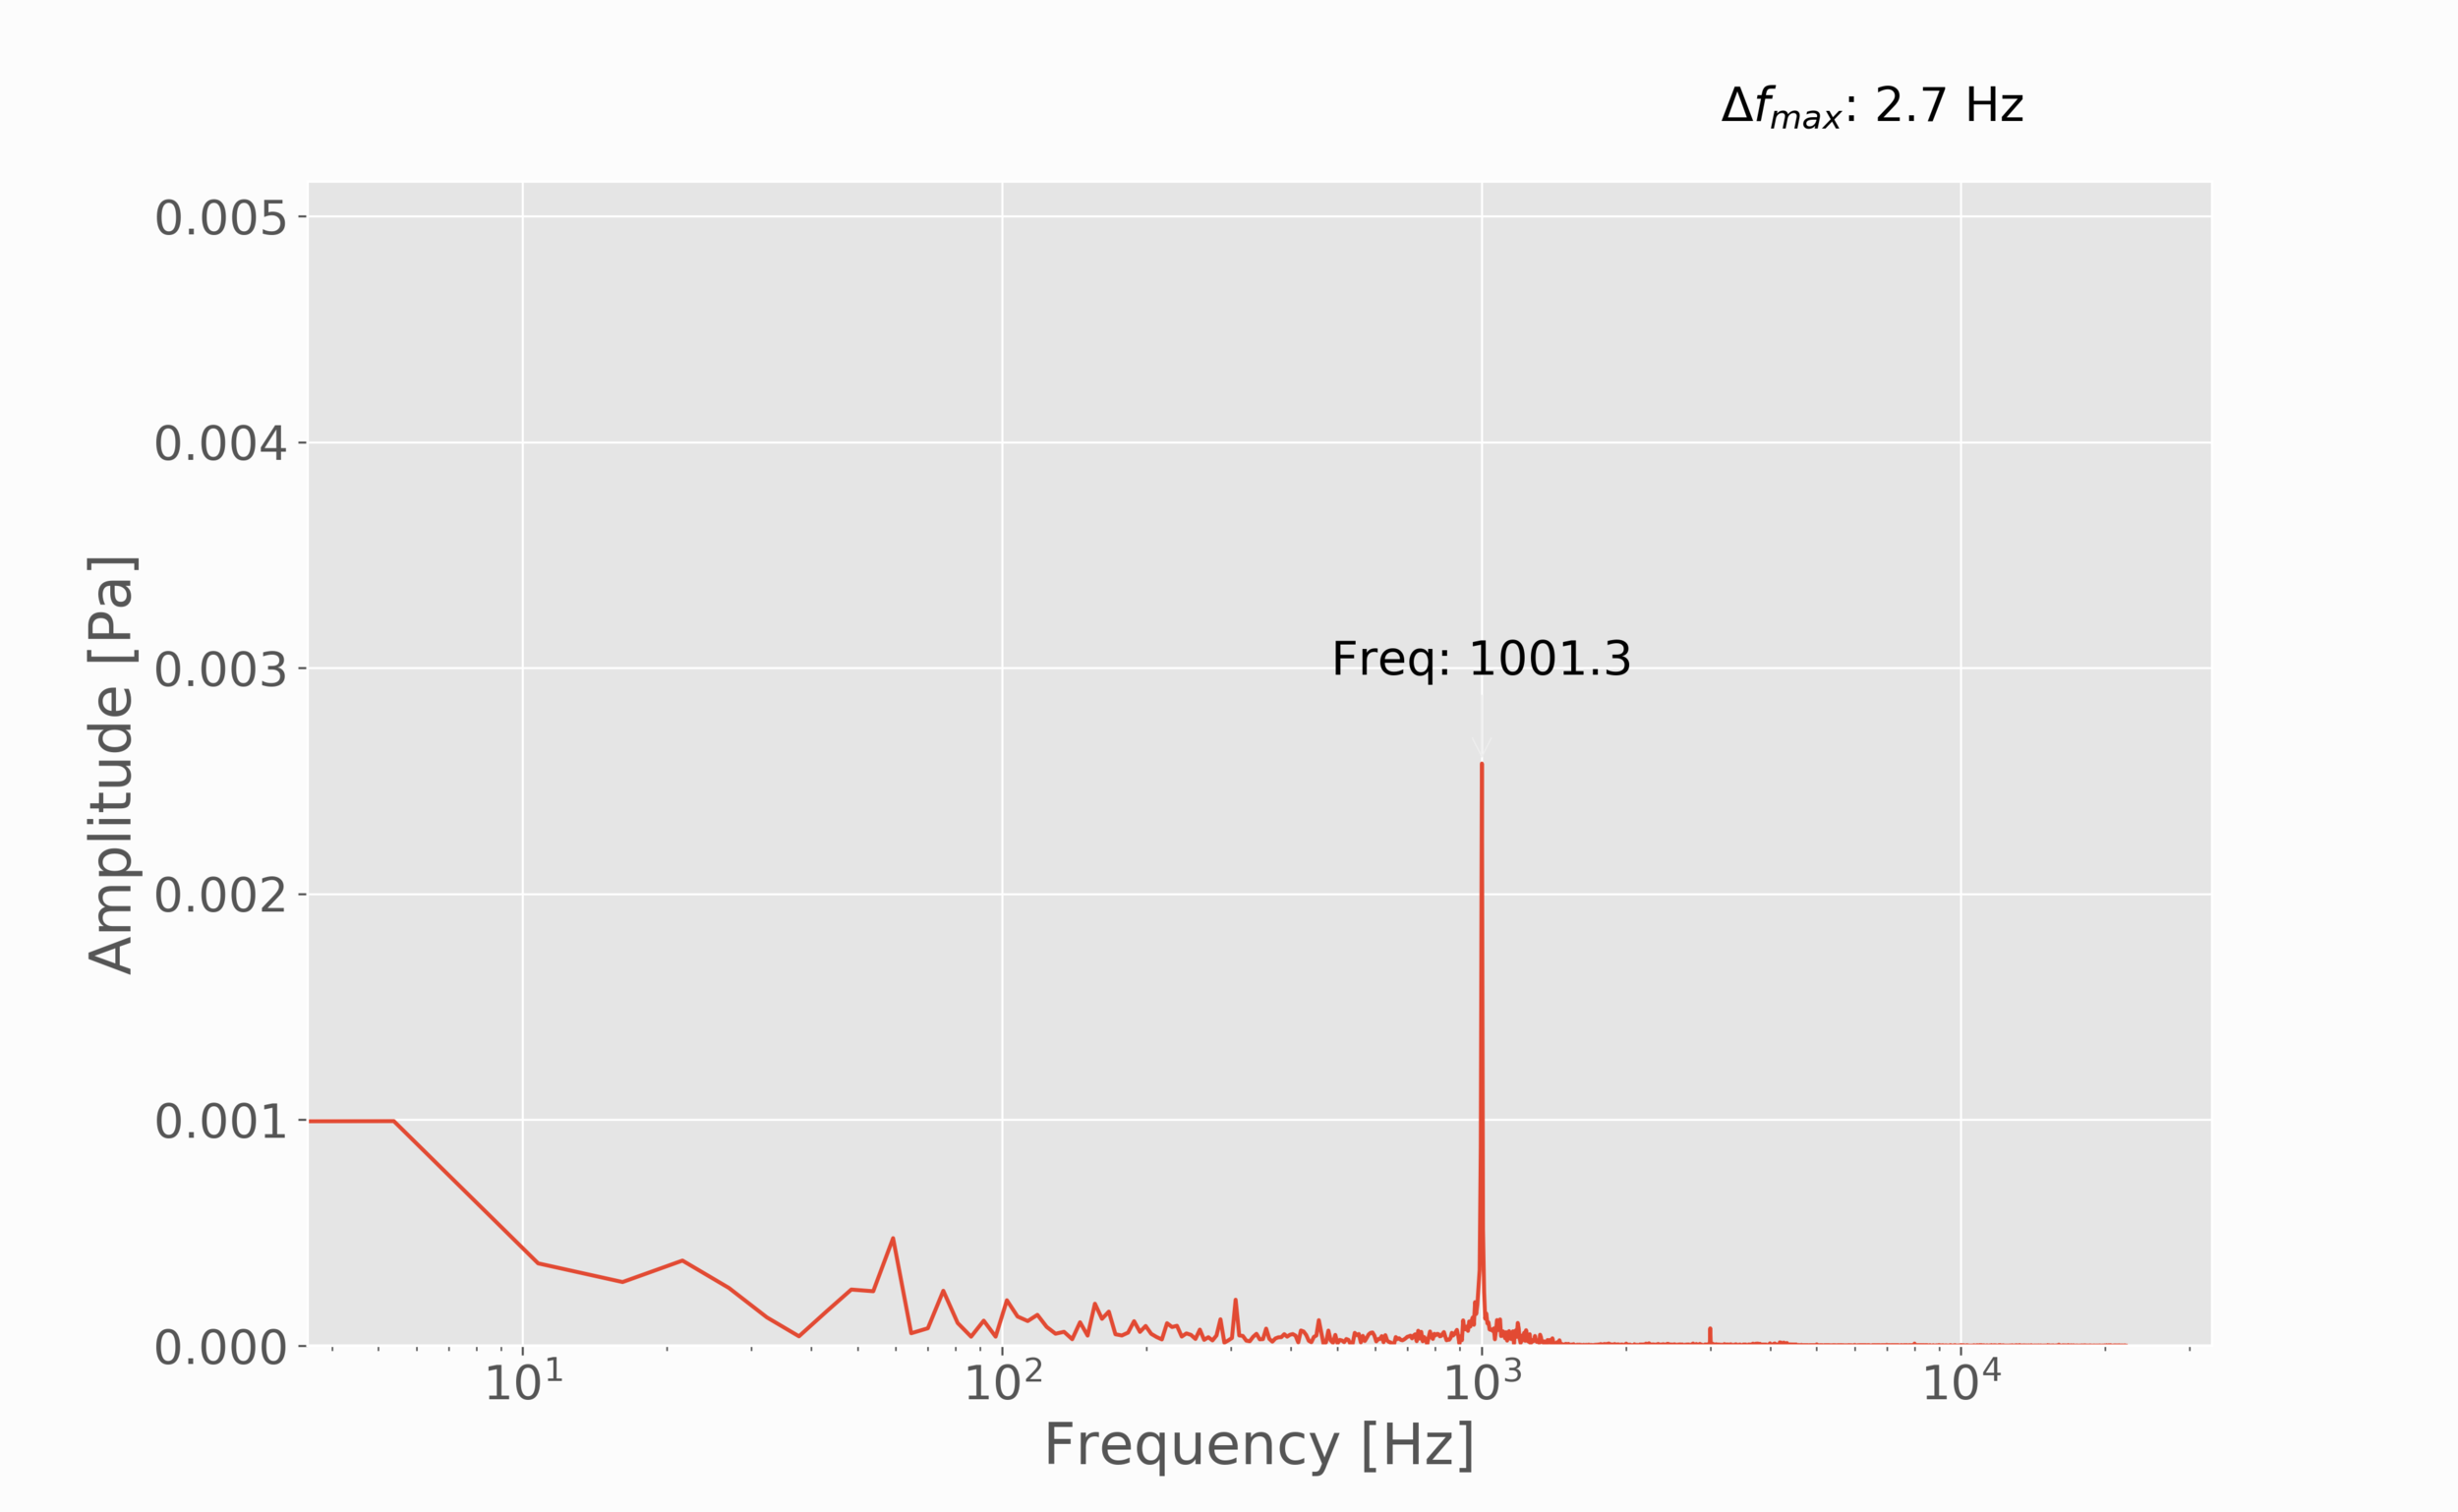 Figure 3:  Spectral plot of a 1 kHz sine wave signal. The max resolvable frequency resolution is 2.7 Hz, meaning, that at 1 kHz we expect a maximum accuracy of 0.27%. In this specific case, we measured 1001.3 Hz, or 0.13% error. The amplitude was measured to be just under 3 mPa. An iPhone was used to generate the 1 kHz sine wave.